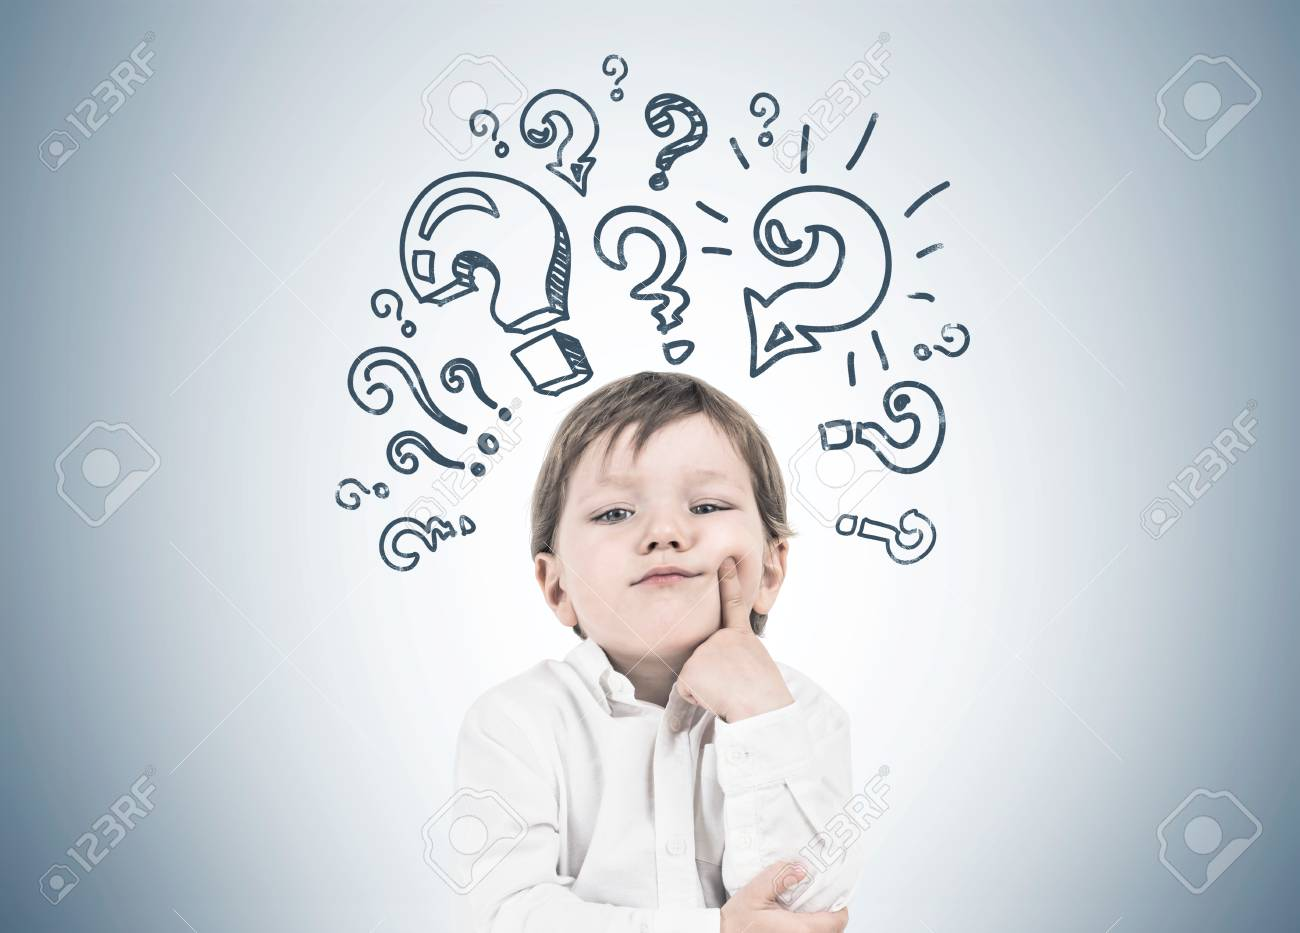 Cute little boy in a white shirt and dark blue jeans is thinking holding his finger near his cheek. Decision making concept. A gray wall background with many question marks - 96979485